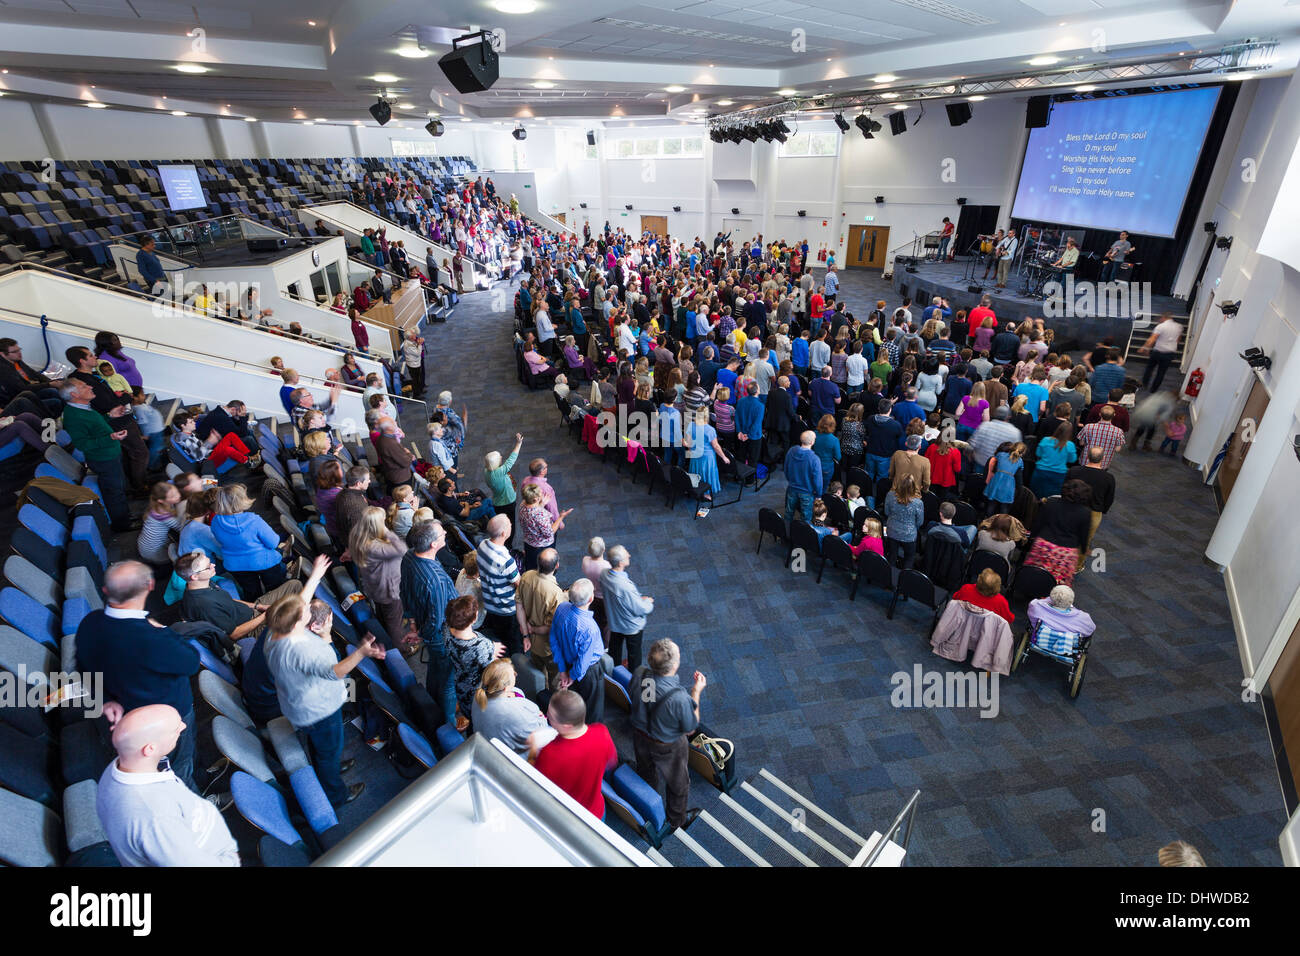 Congregation participating in contemporary worship music during Sunday Service inside the large modern Kings Community Church. - Stock Image